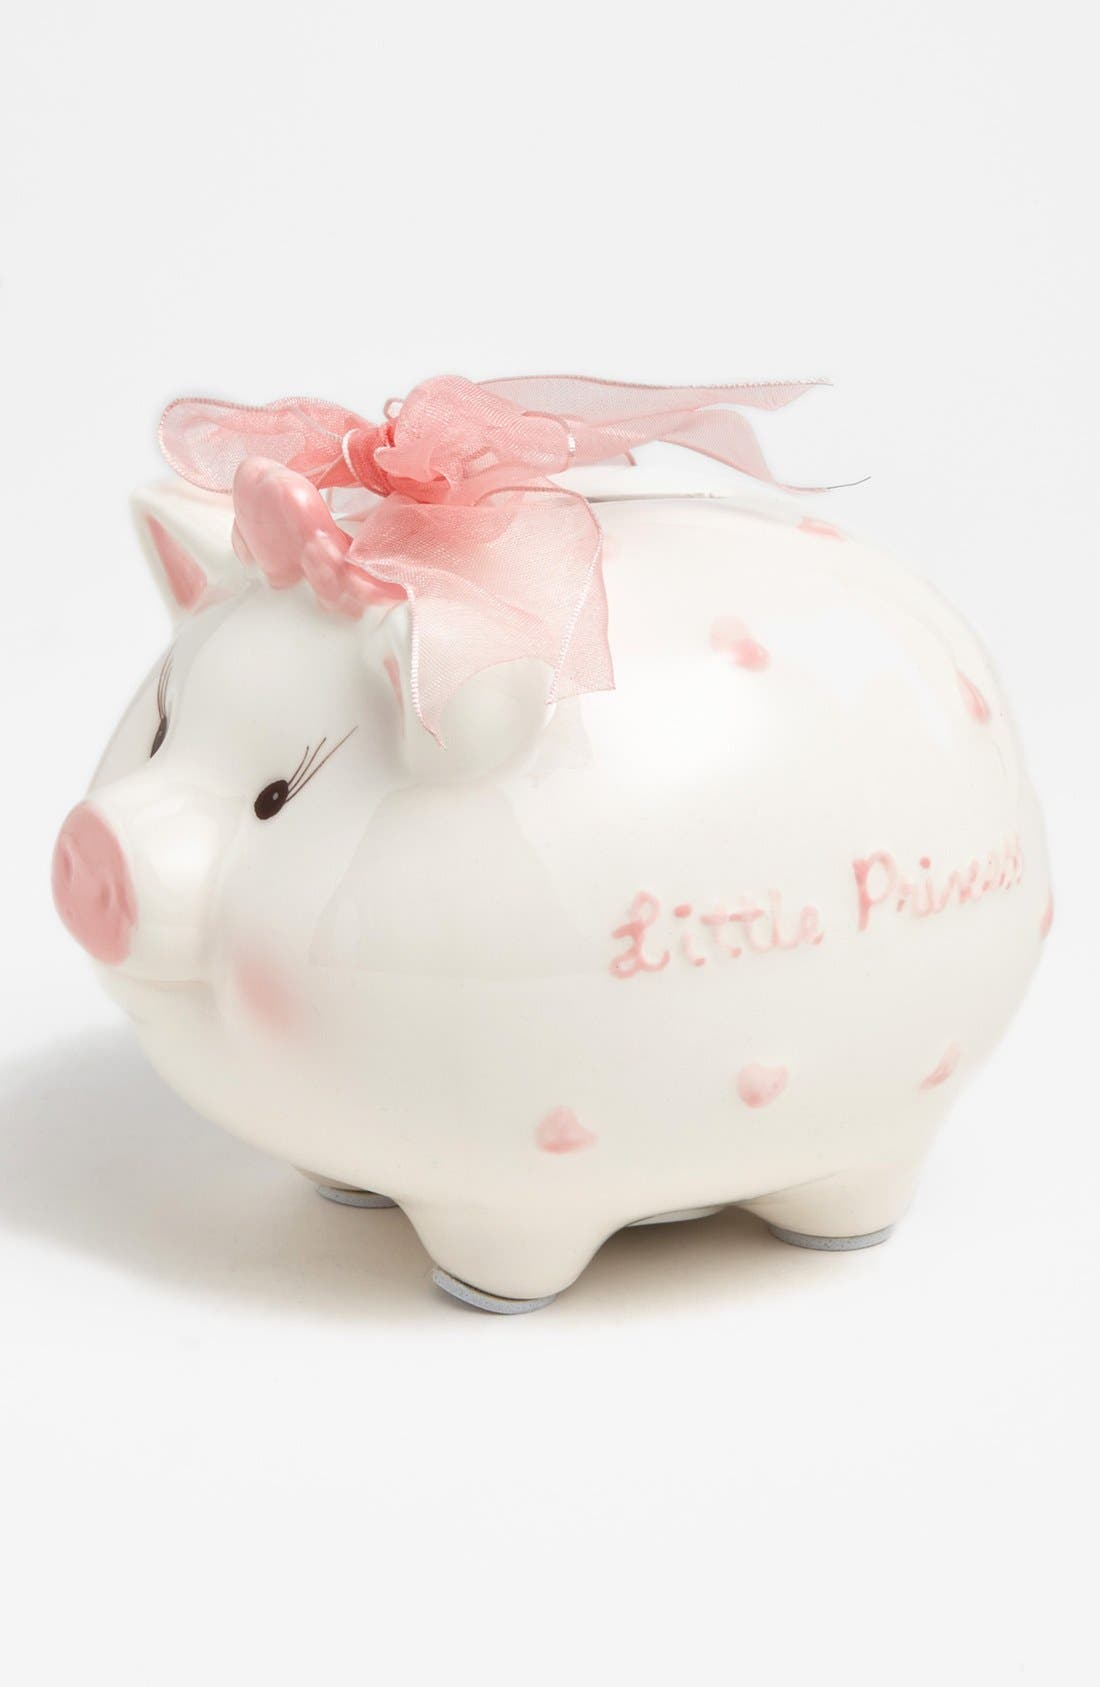 Mud Pie 'Little Princess' Bank